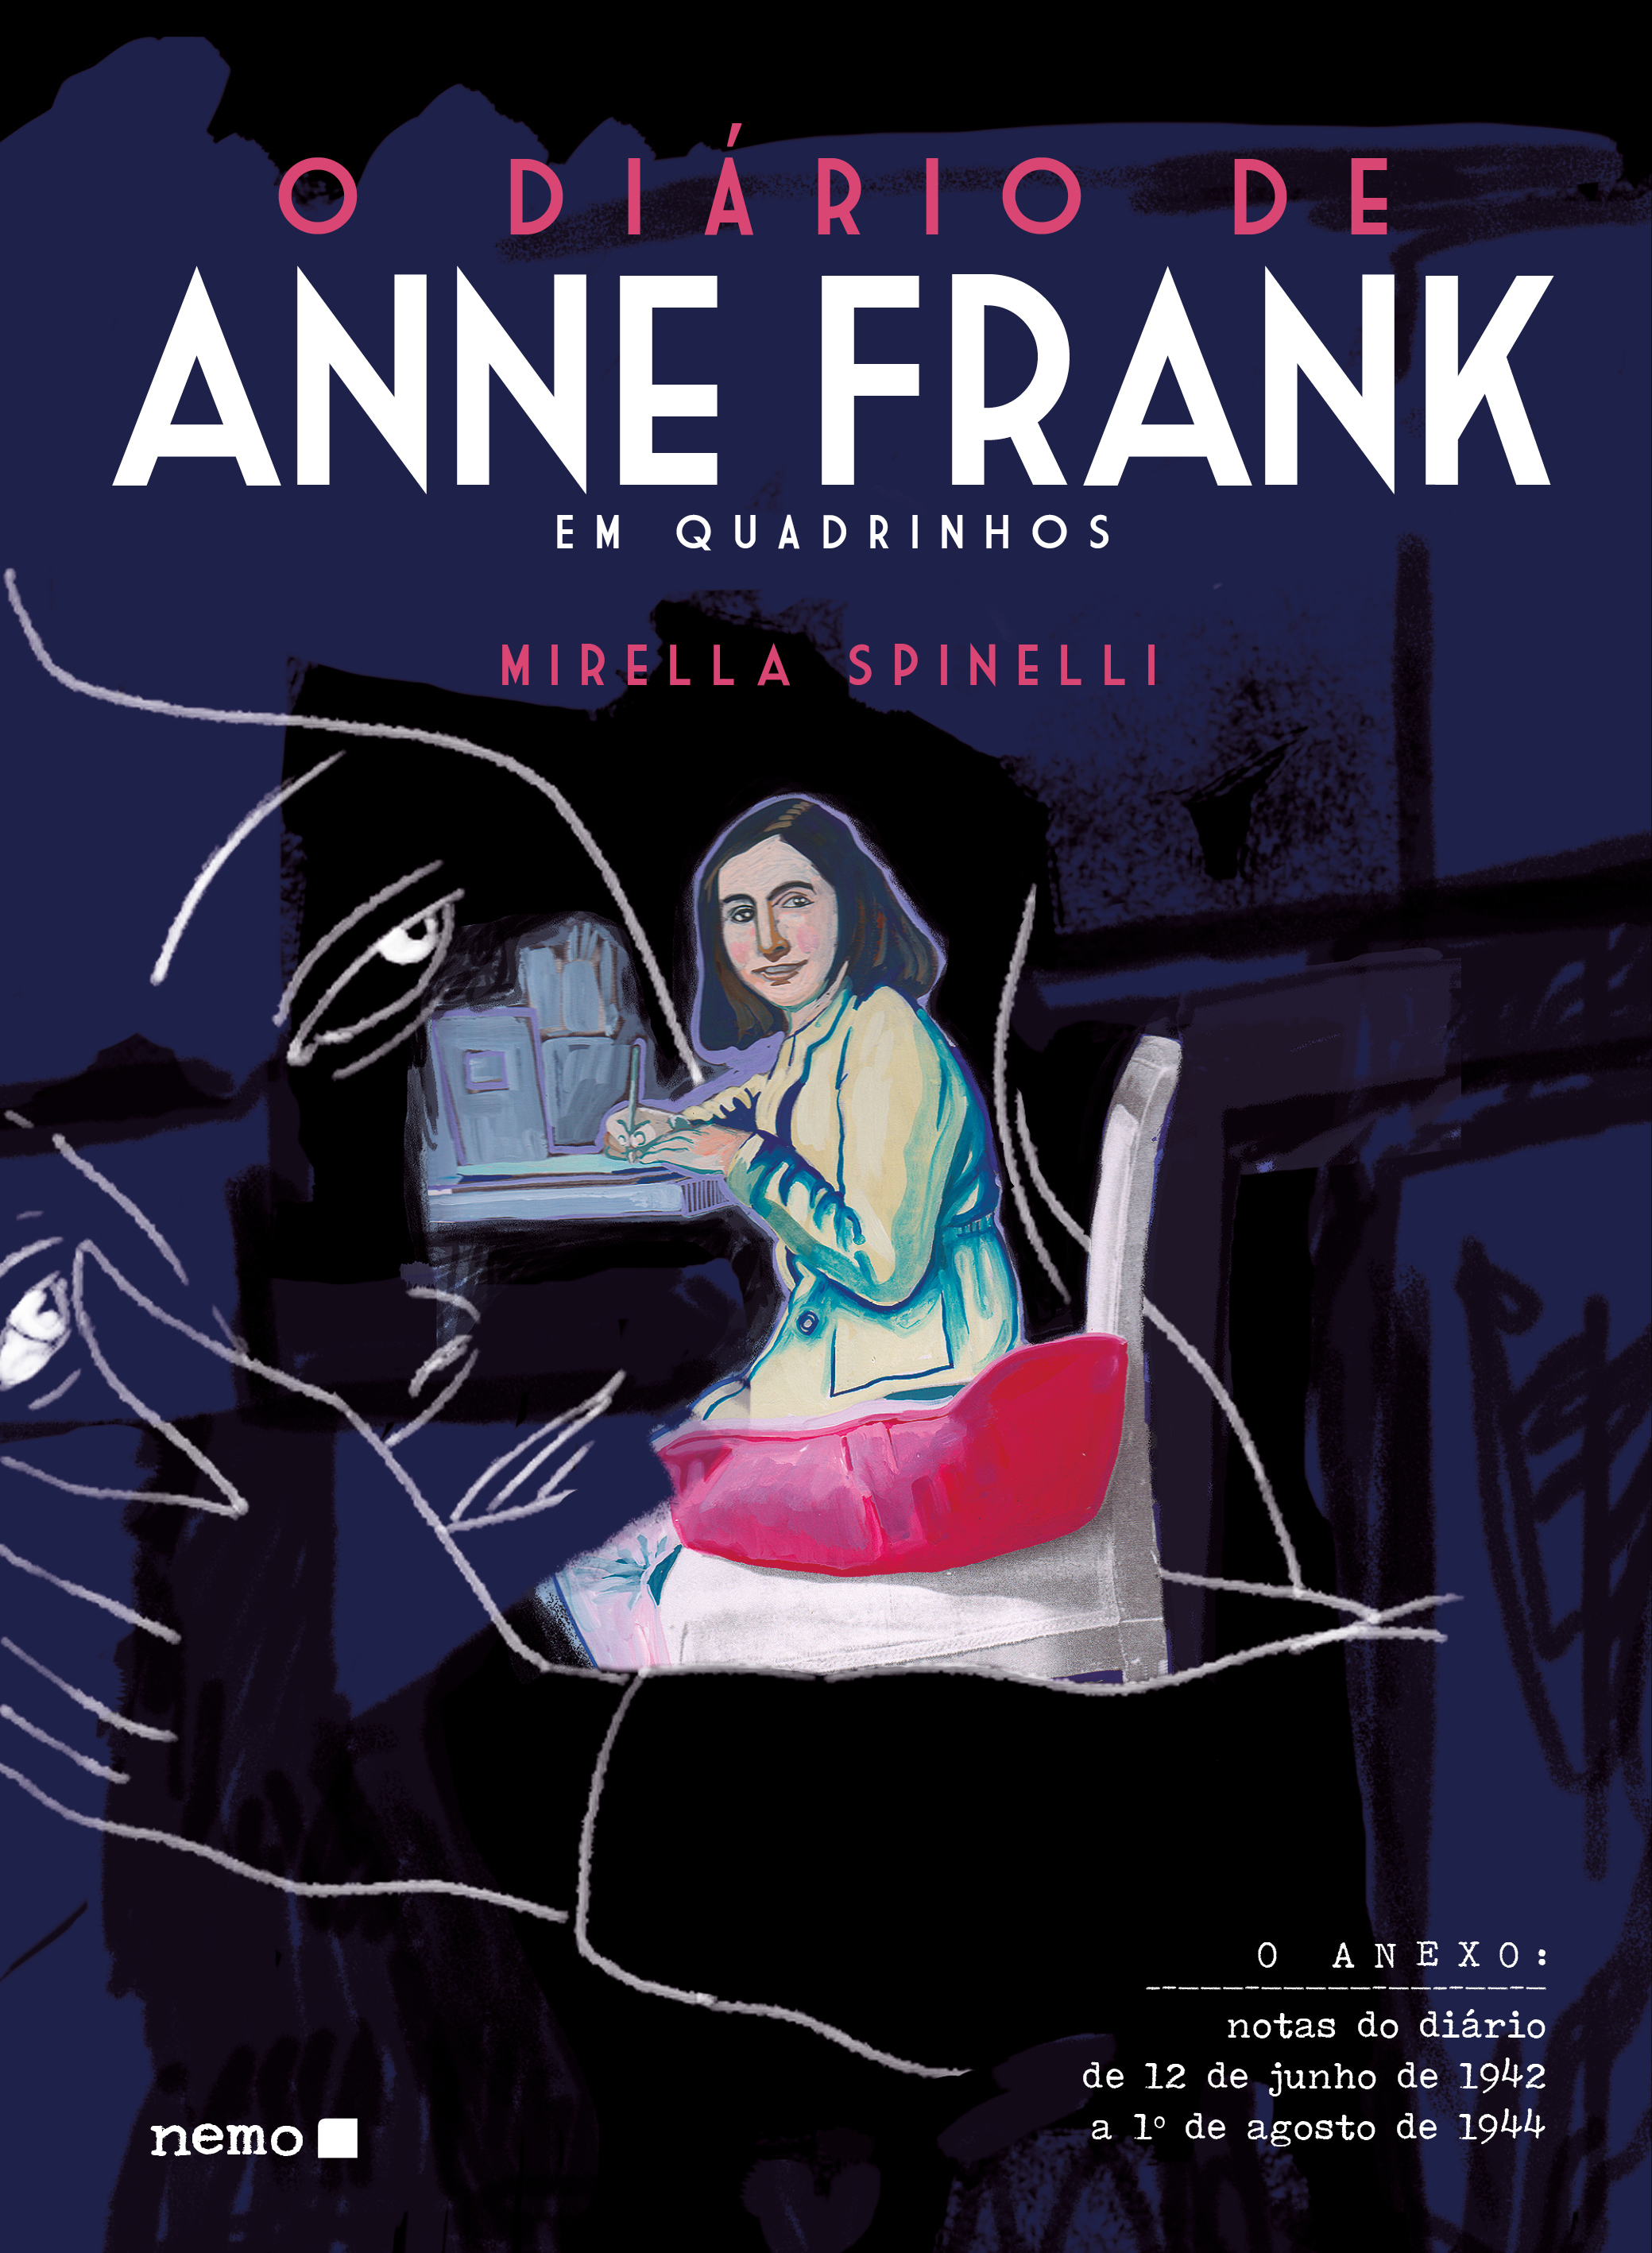 THE DIARY OF ANNE FRANK - A GRAPHIC NOVEL